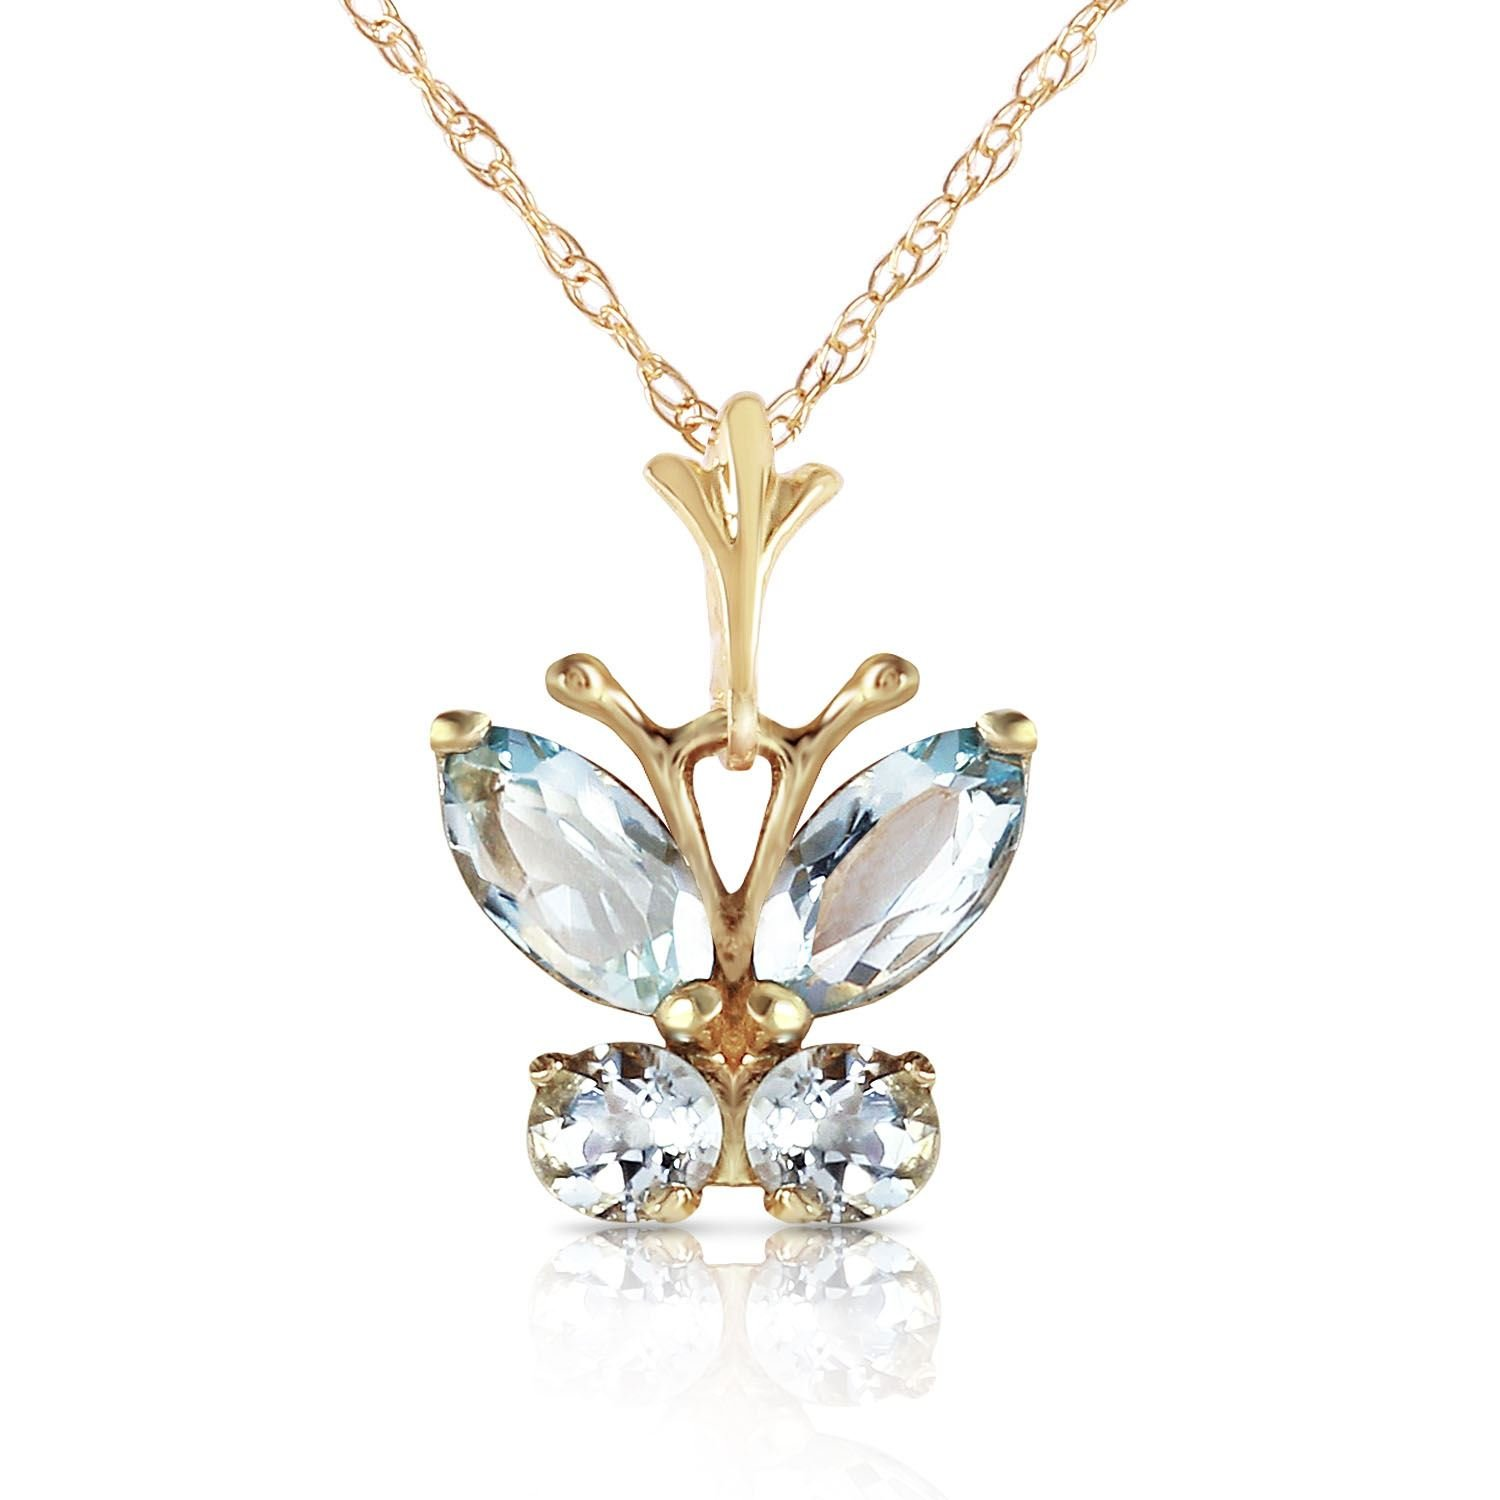 ALARRI 0.6 Carat 14K Solid Gold Butterfly Necklace Aquamarine with 22 Inch Chain Length